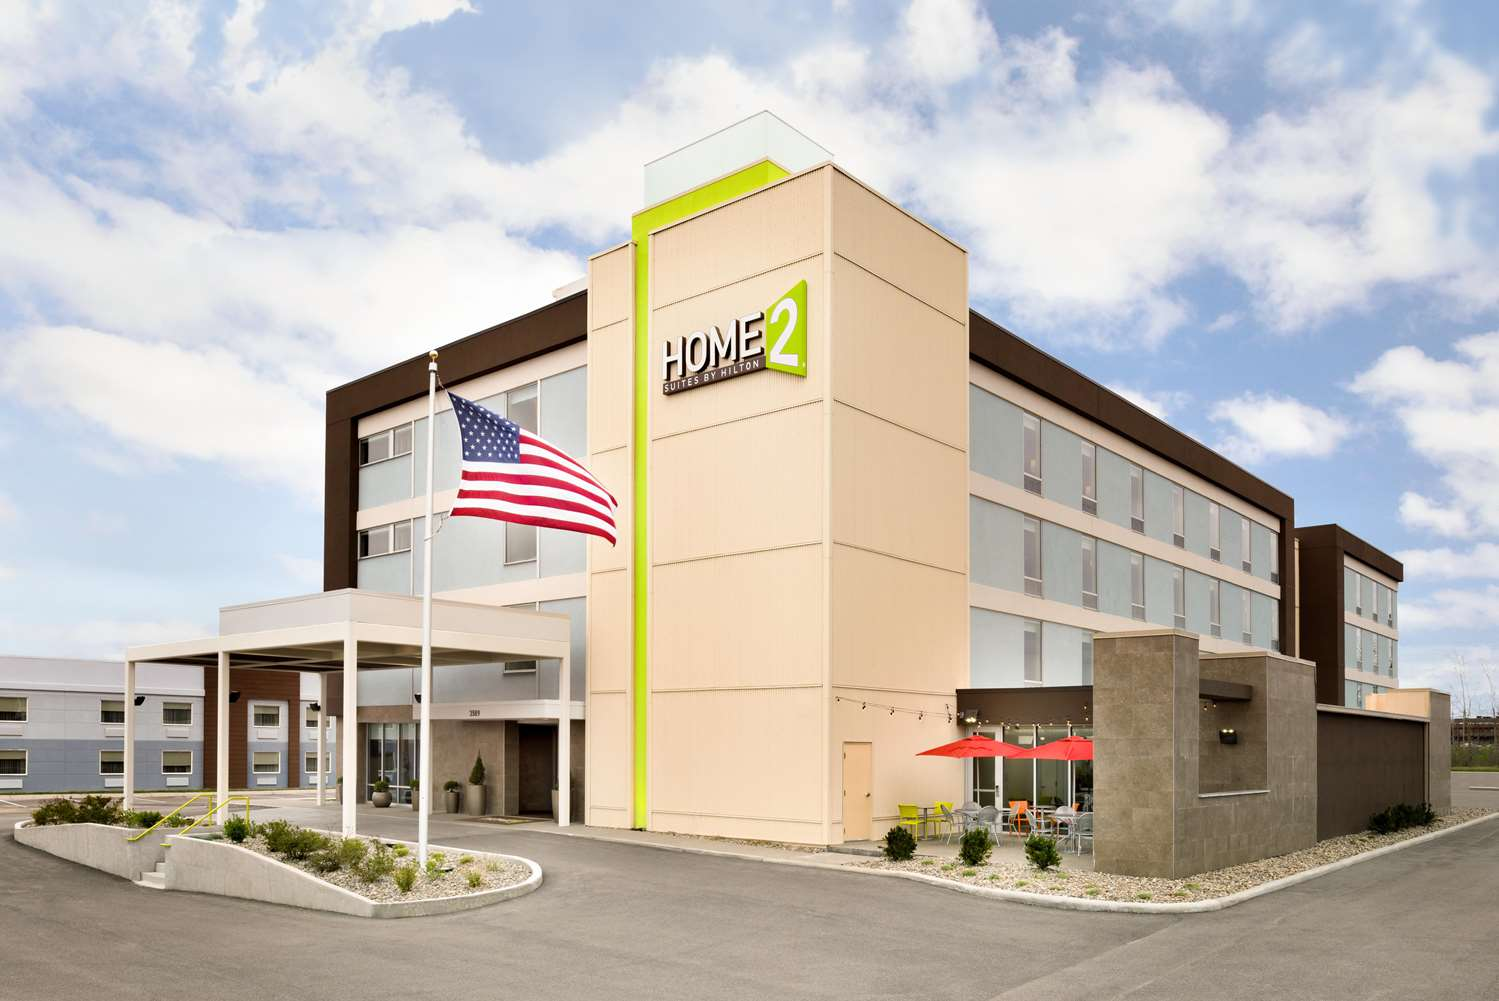 Exterior view - Home2 Suites by Hilton Beachwood